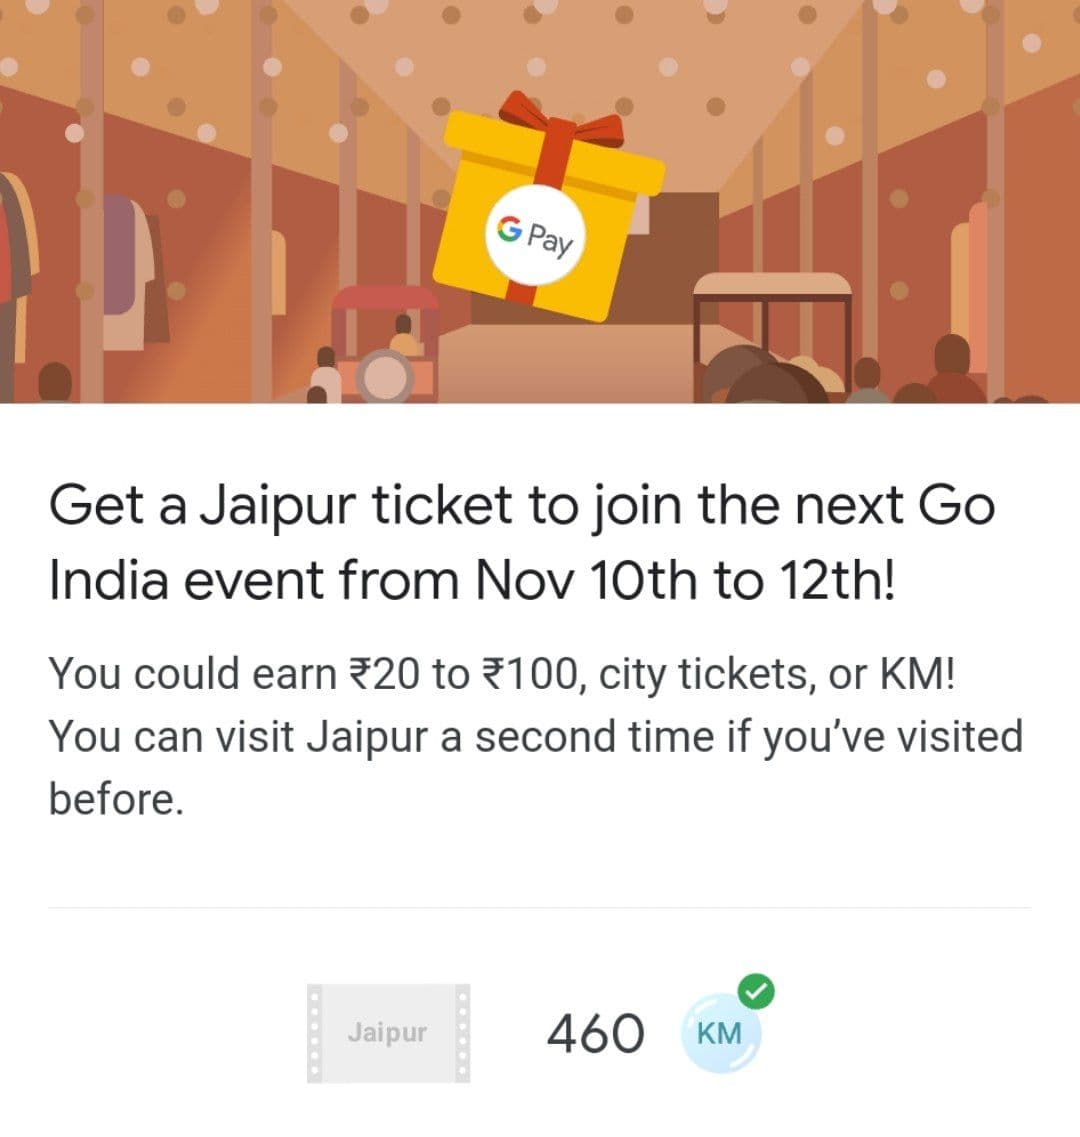 gpay jaipur event answer